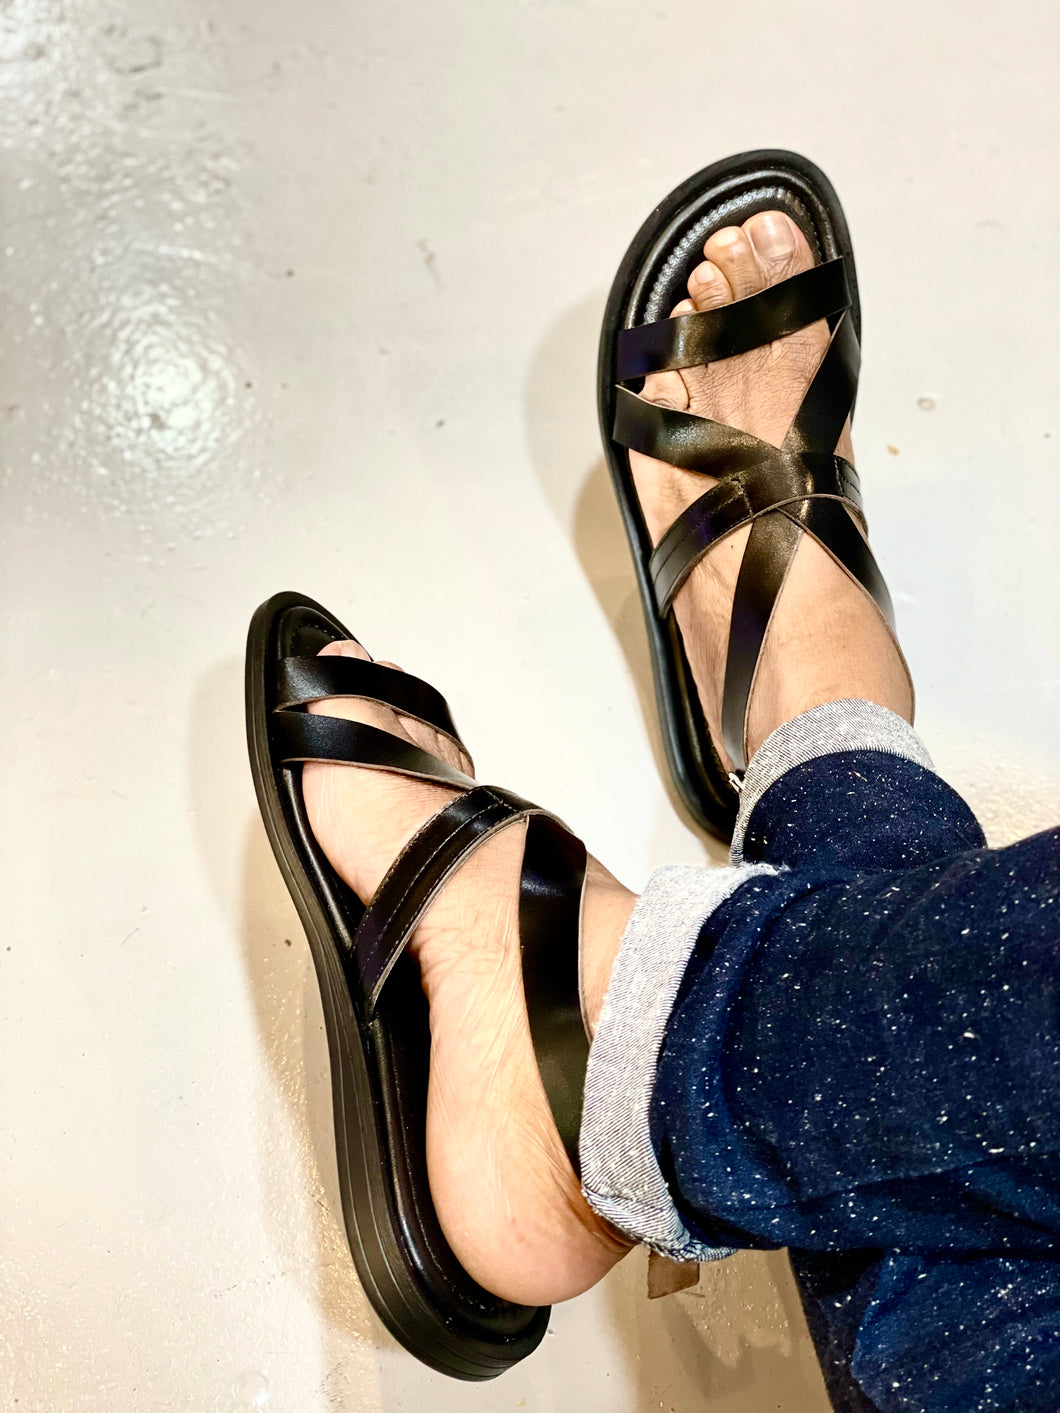 092- Lufiano Collection-Leather sandals- Black